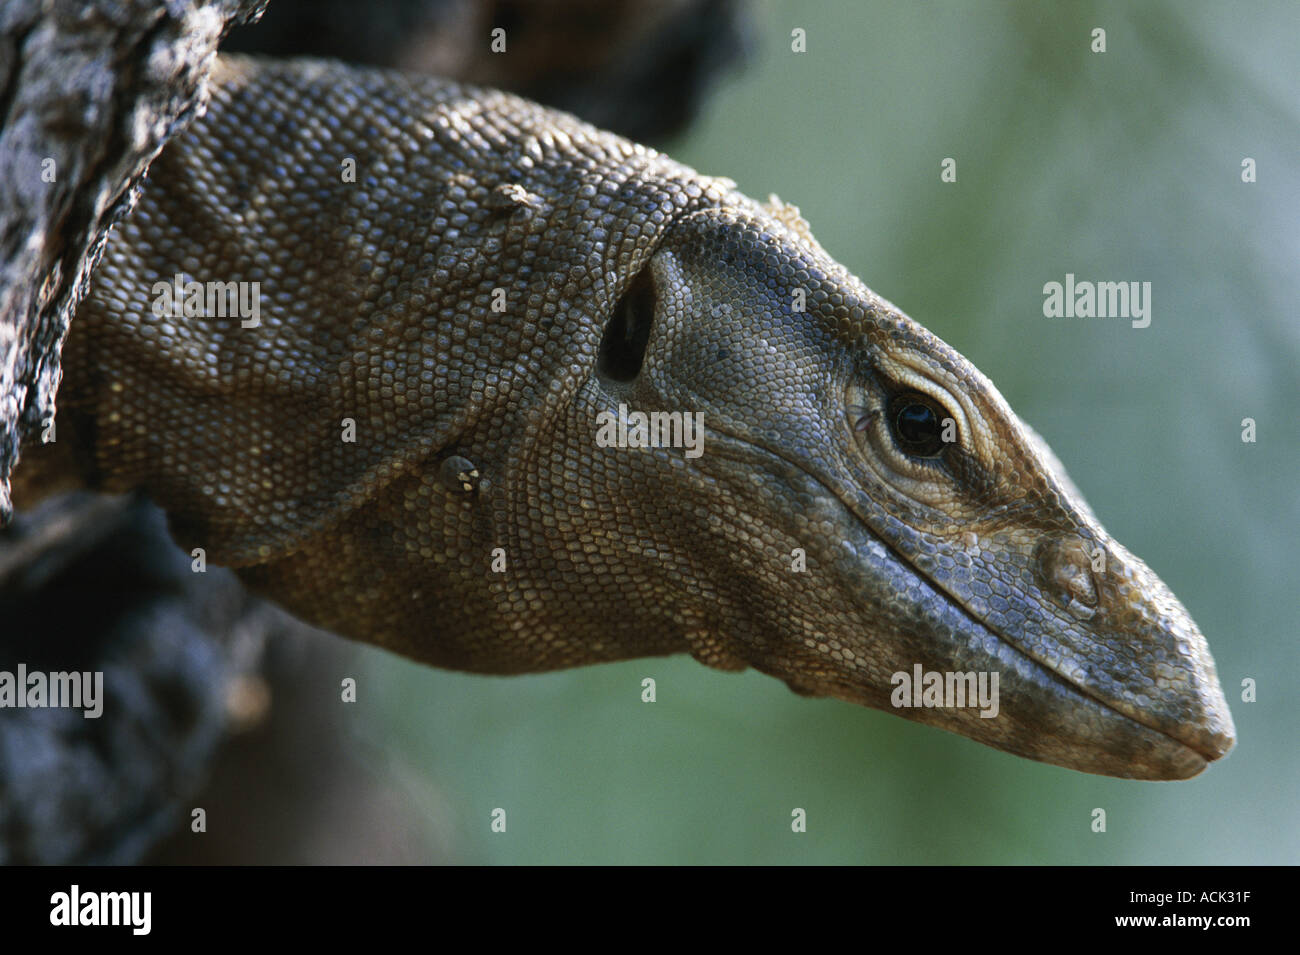 Bengal monitor lizard head portrait Varanus benghalensis Keoladeo Ghana NP India Stock Photo